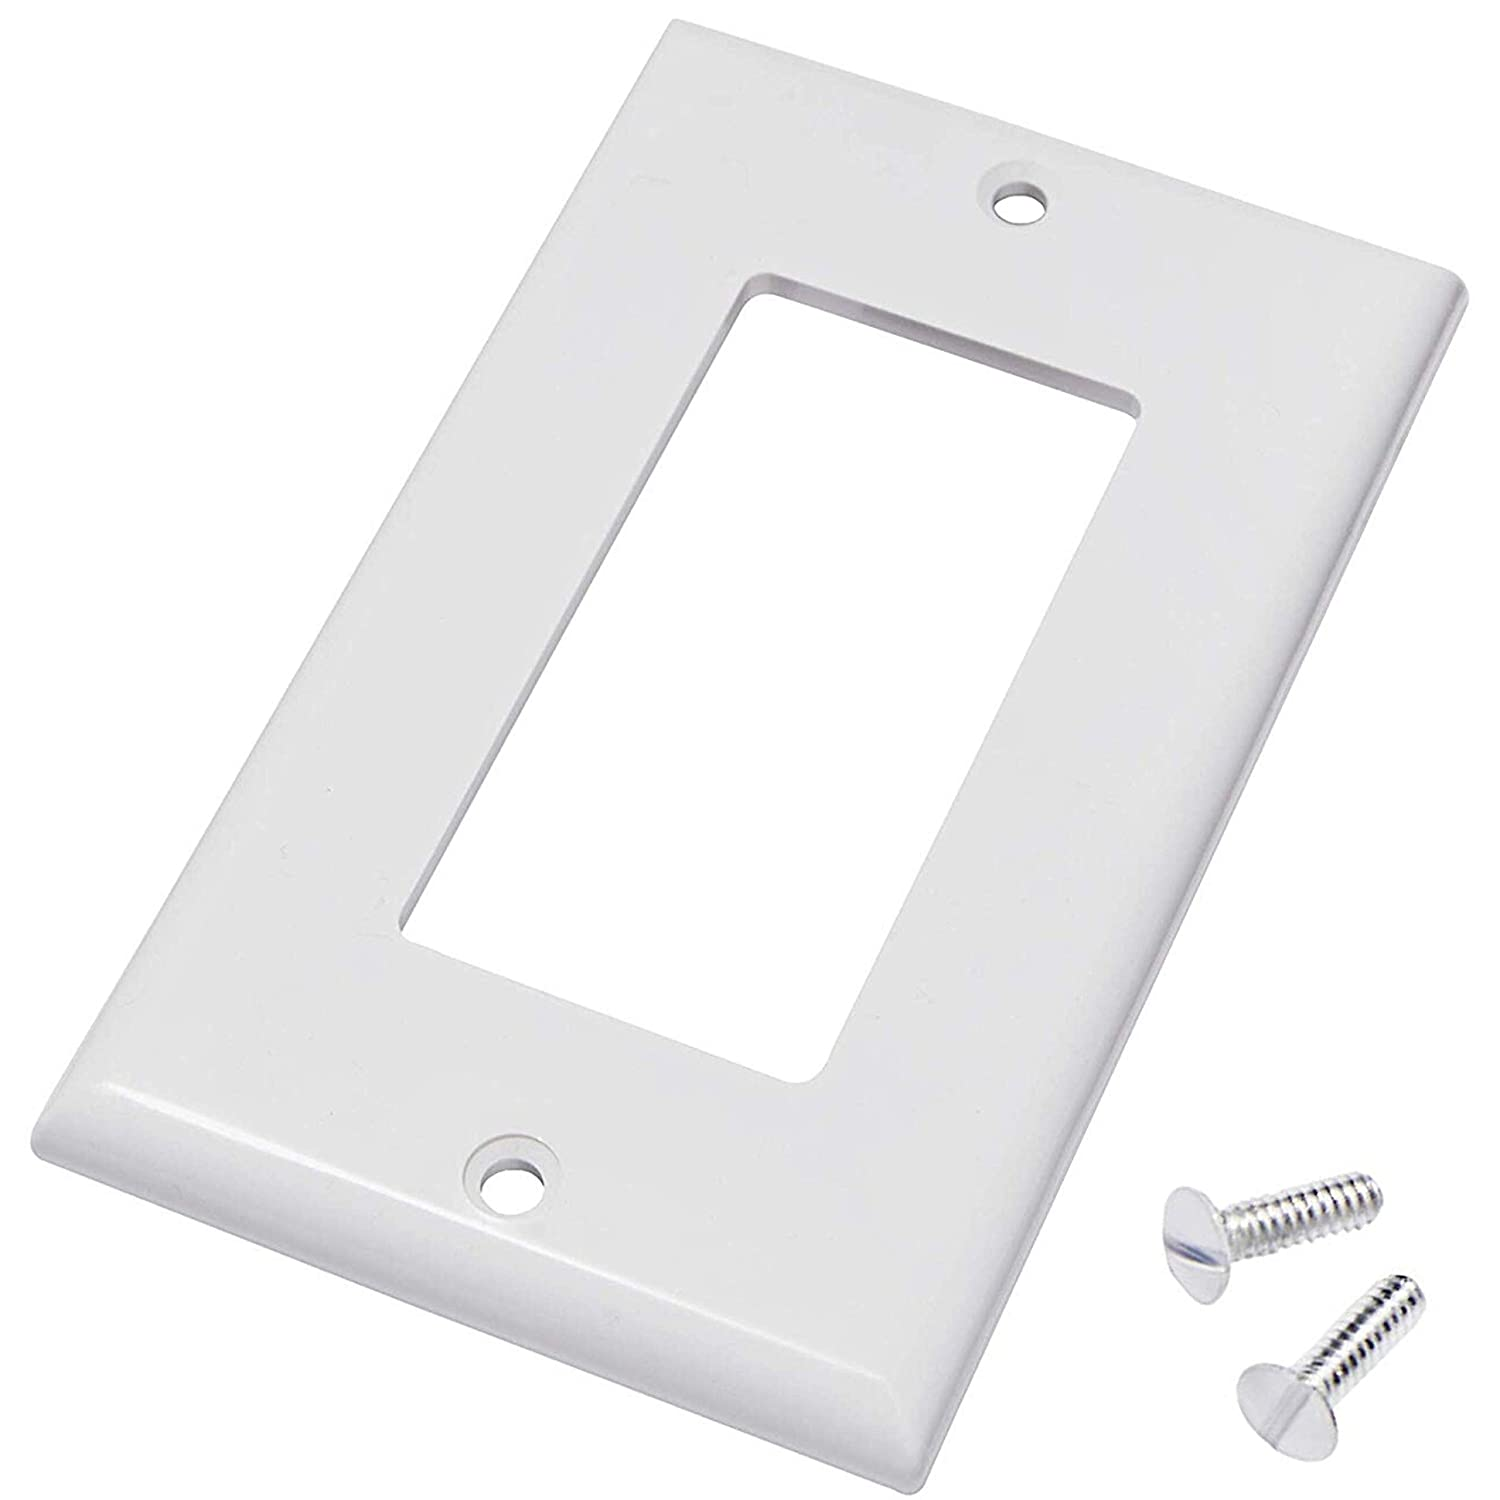 Decora Switch Plate (4 Pack) Decora Outlet Cover Decora Wall Plate Decora Cover Decora Receptacle Decora Outlet Covers Decora 1-Gang Wall Plate Decora Wall Plate - White